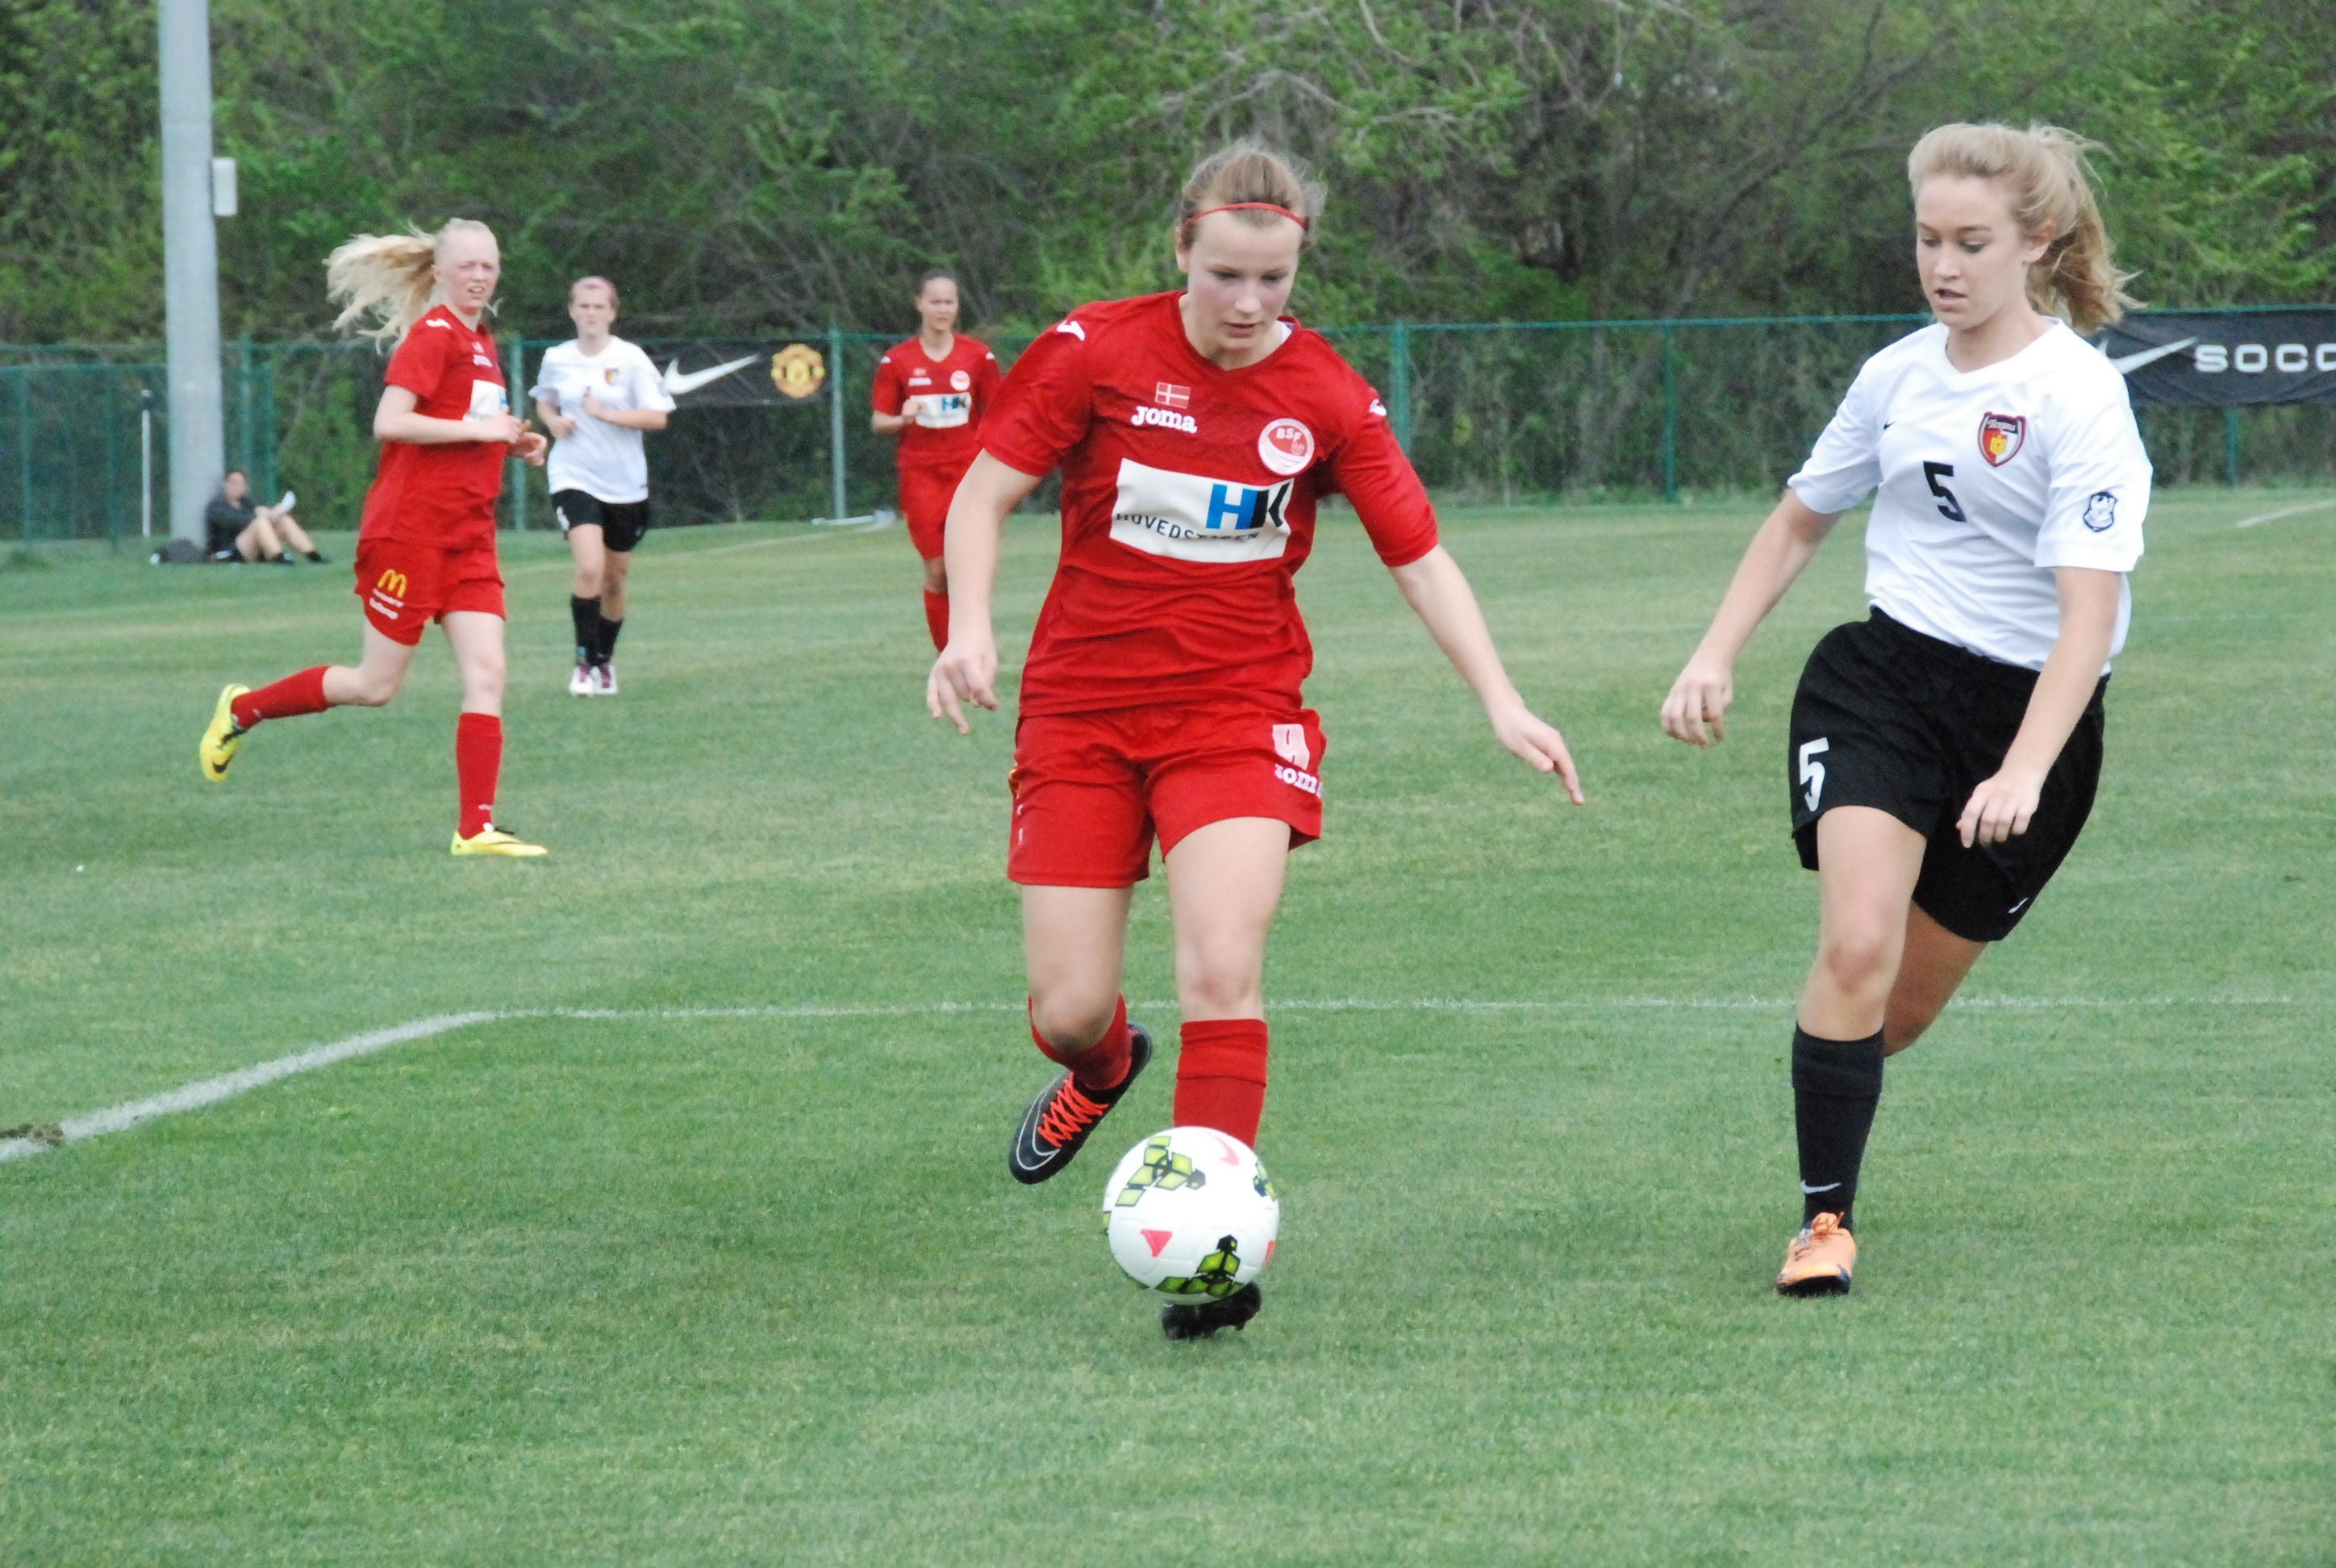 Premier International Tours and the Dallas Texans, the #1